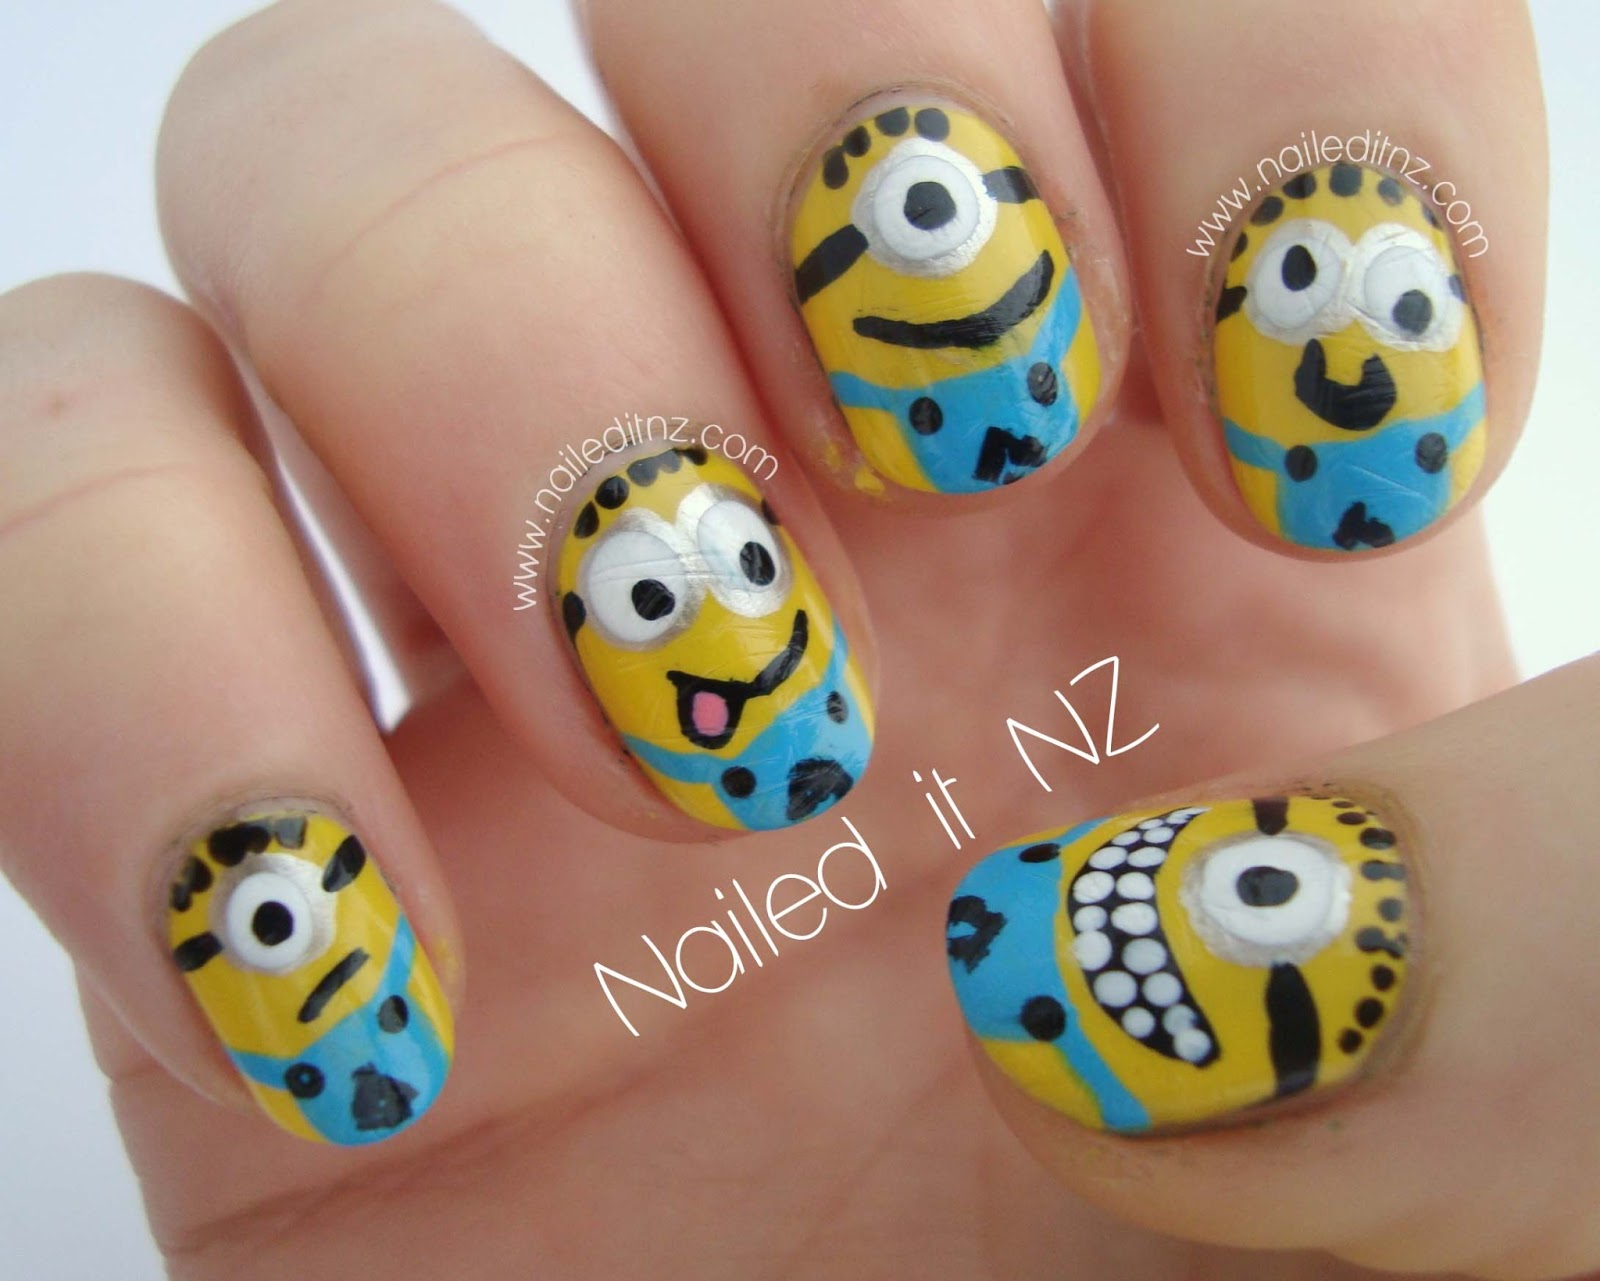 Despicable Me nail art & tutorial!